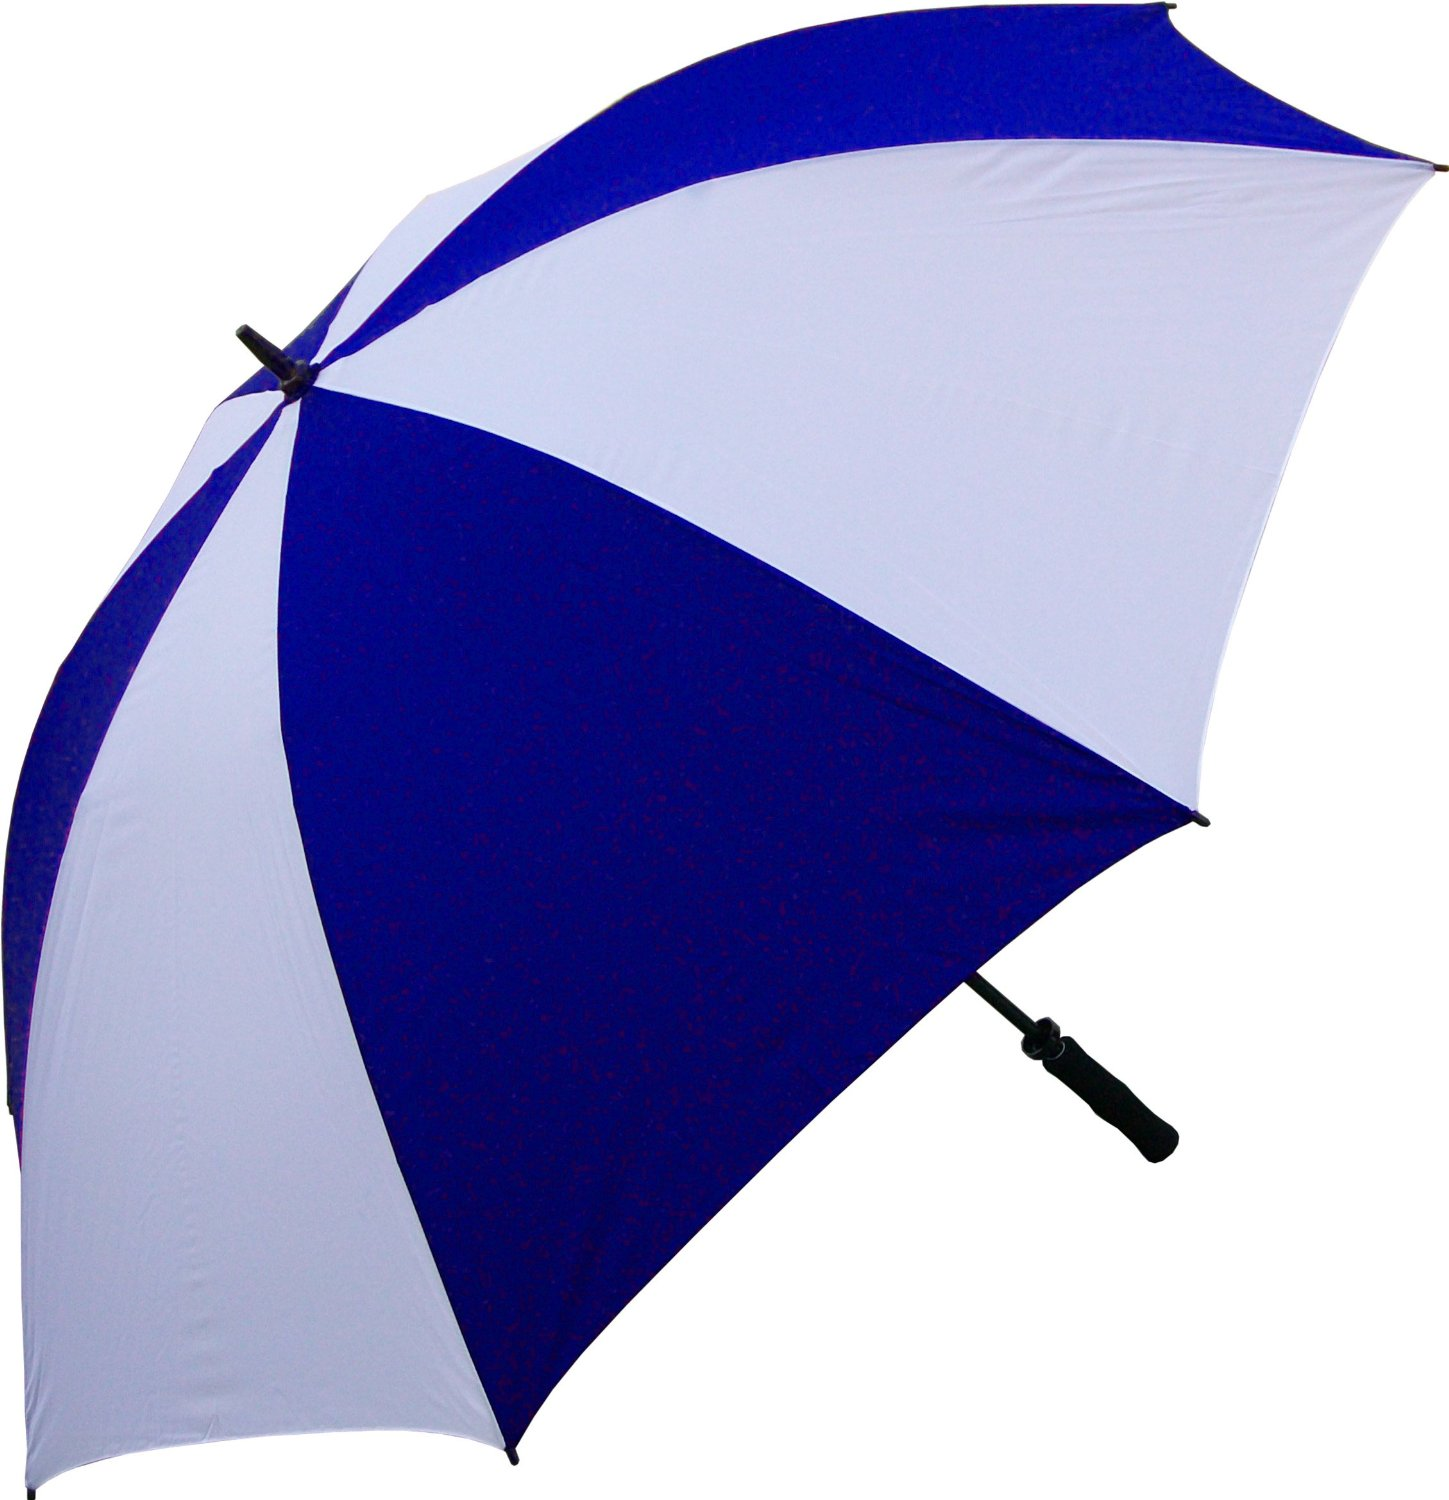 What is a Golf ... Umbrella Stroller With Canopy